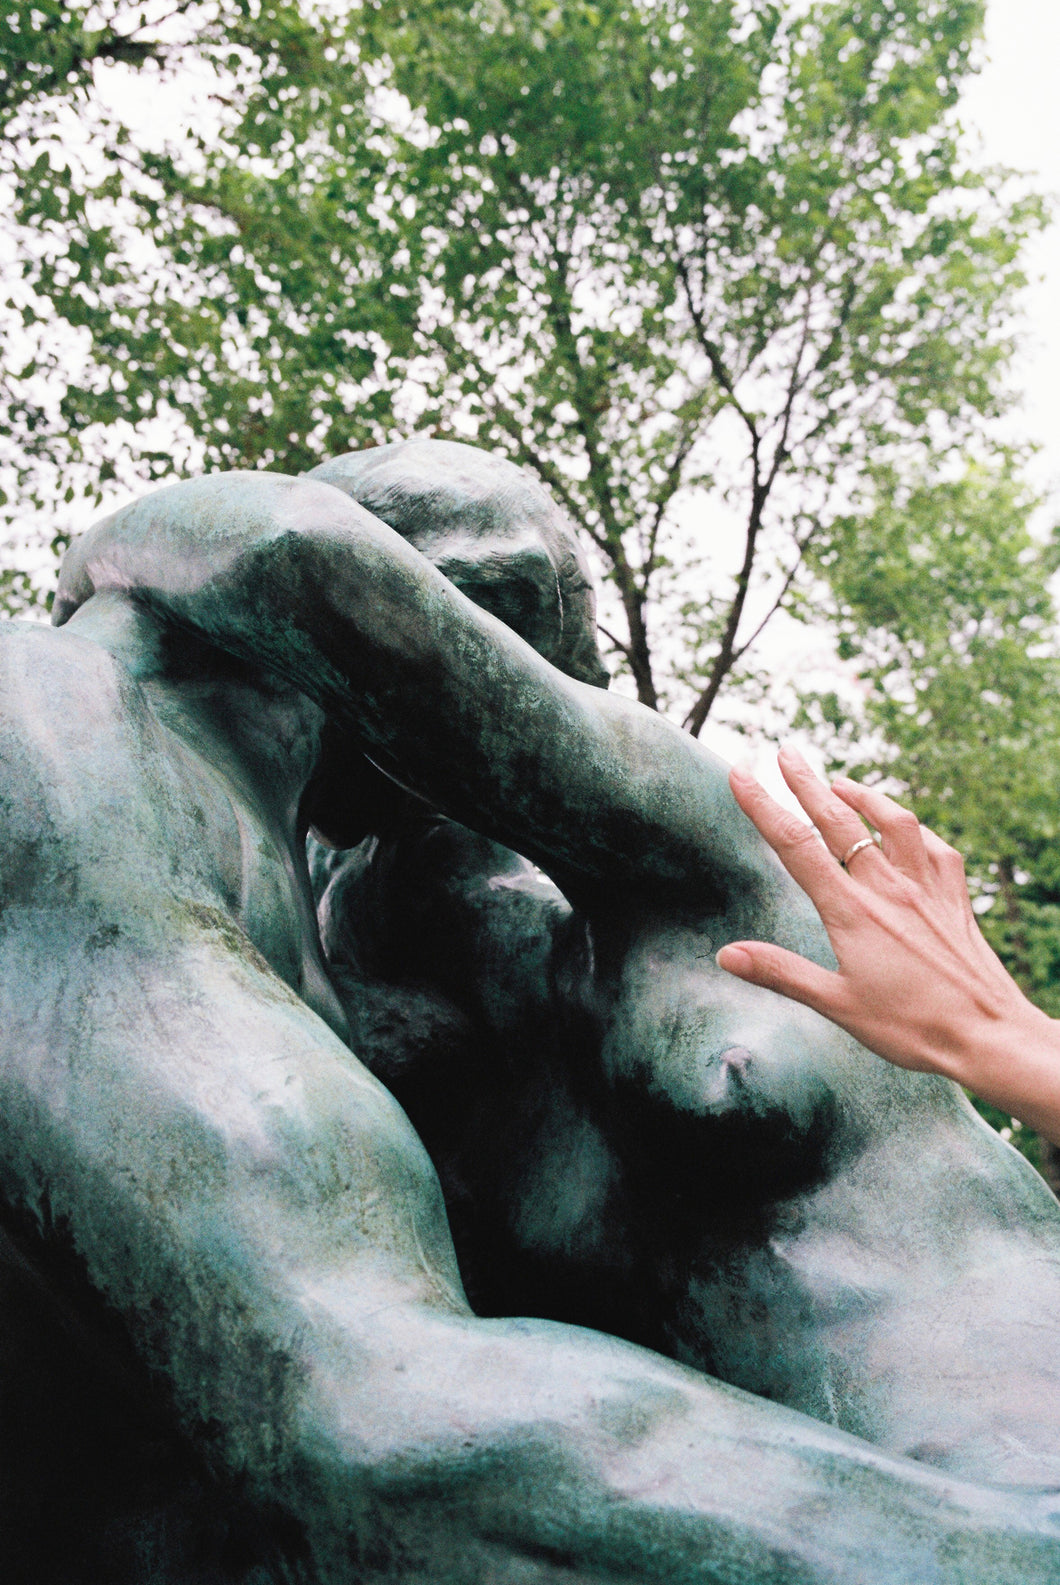 Mahala Nuuk - The Kiss by Rodin, Paris